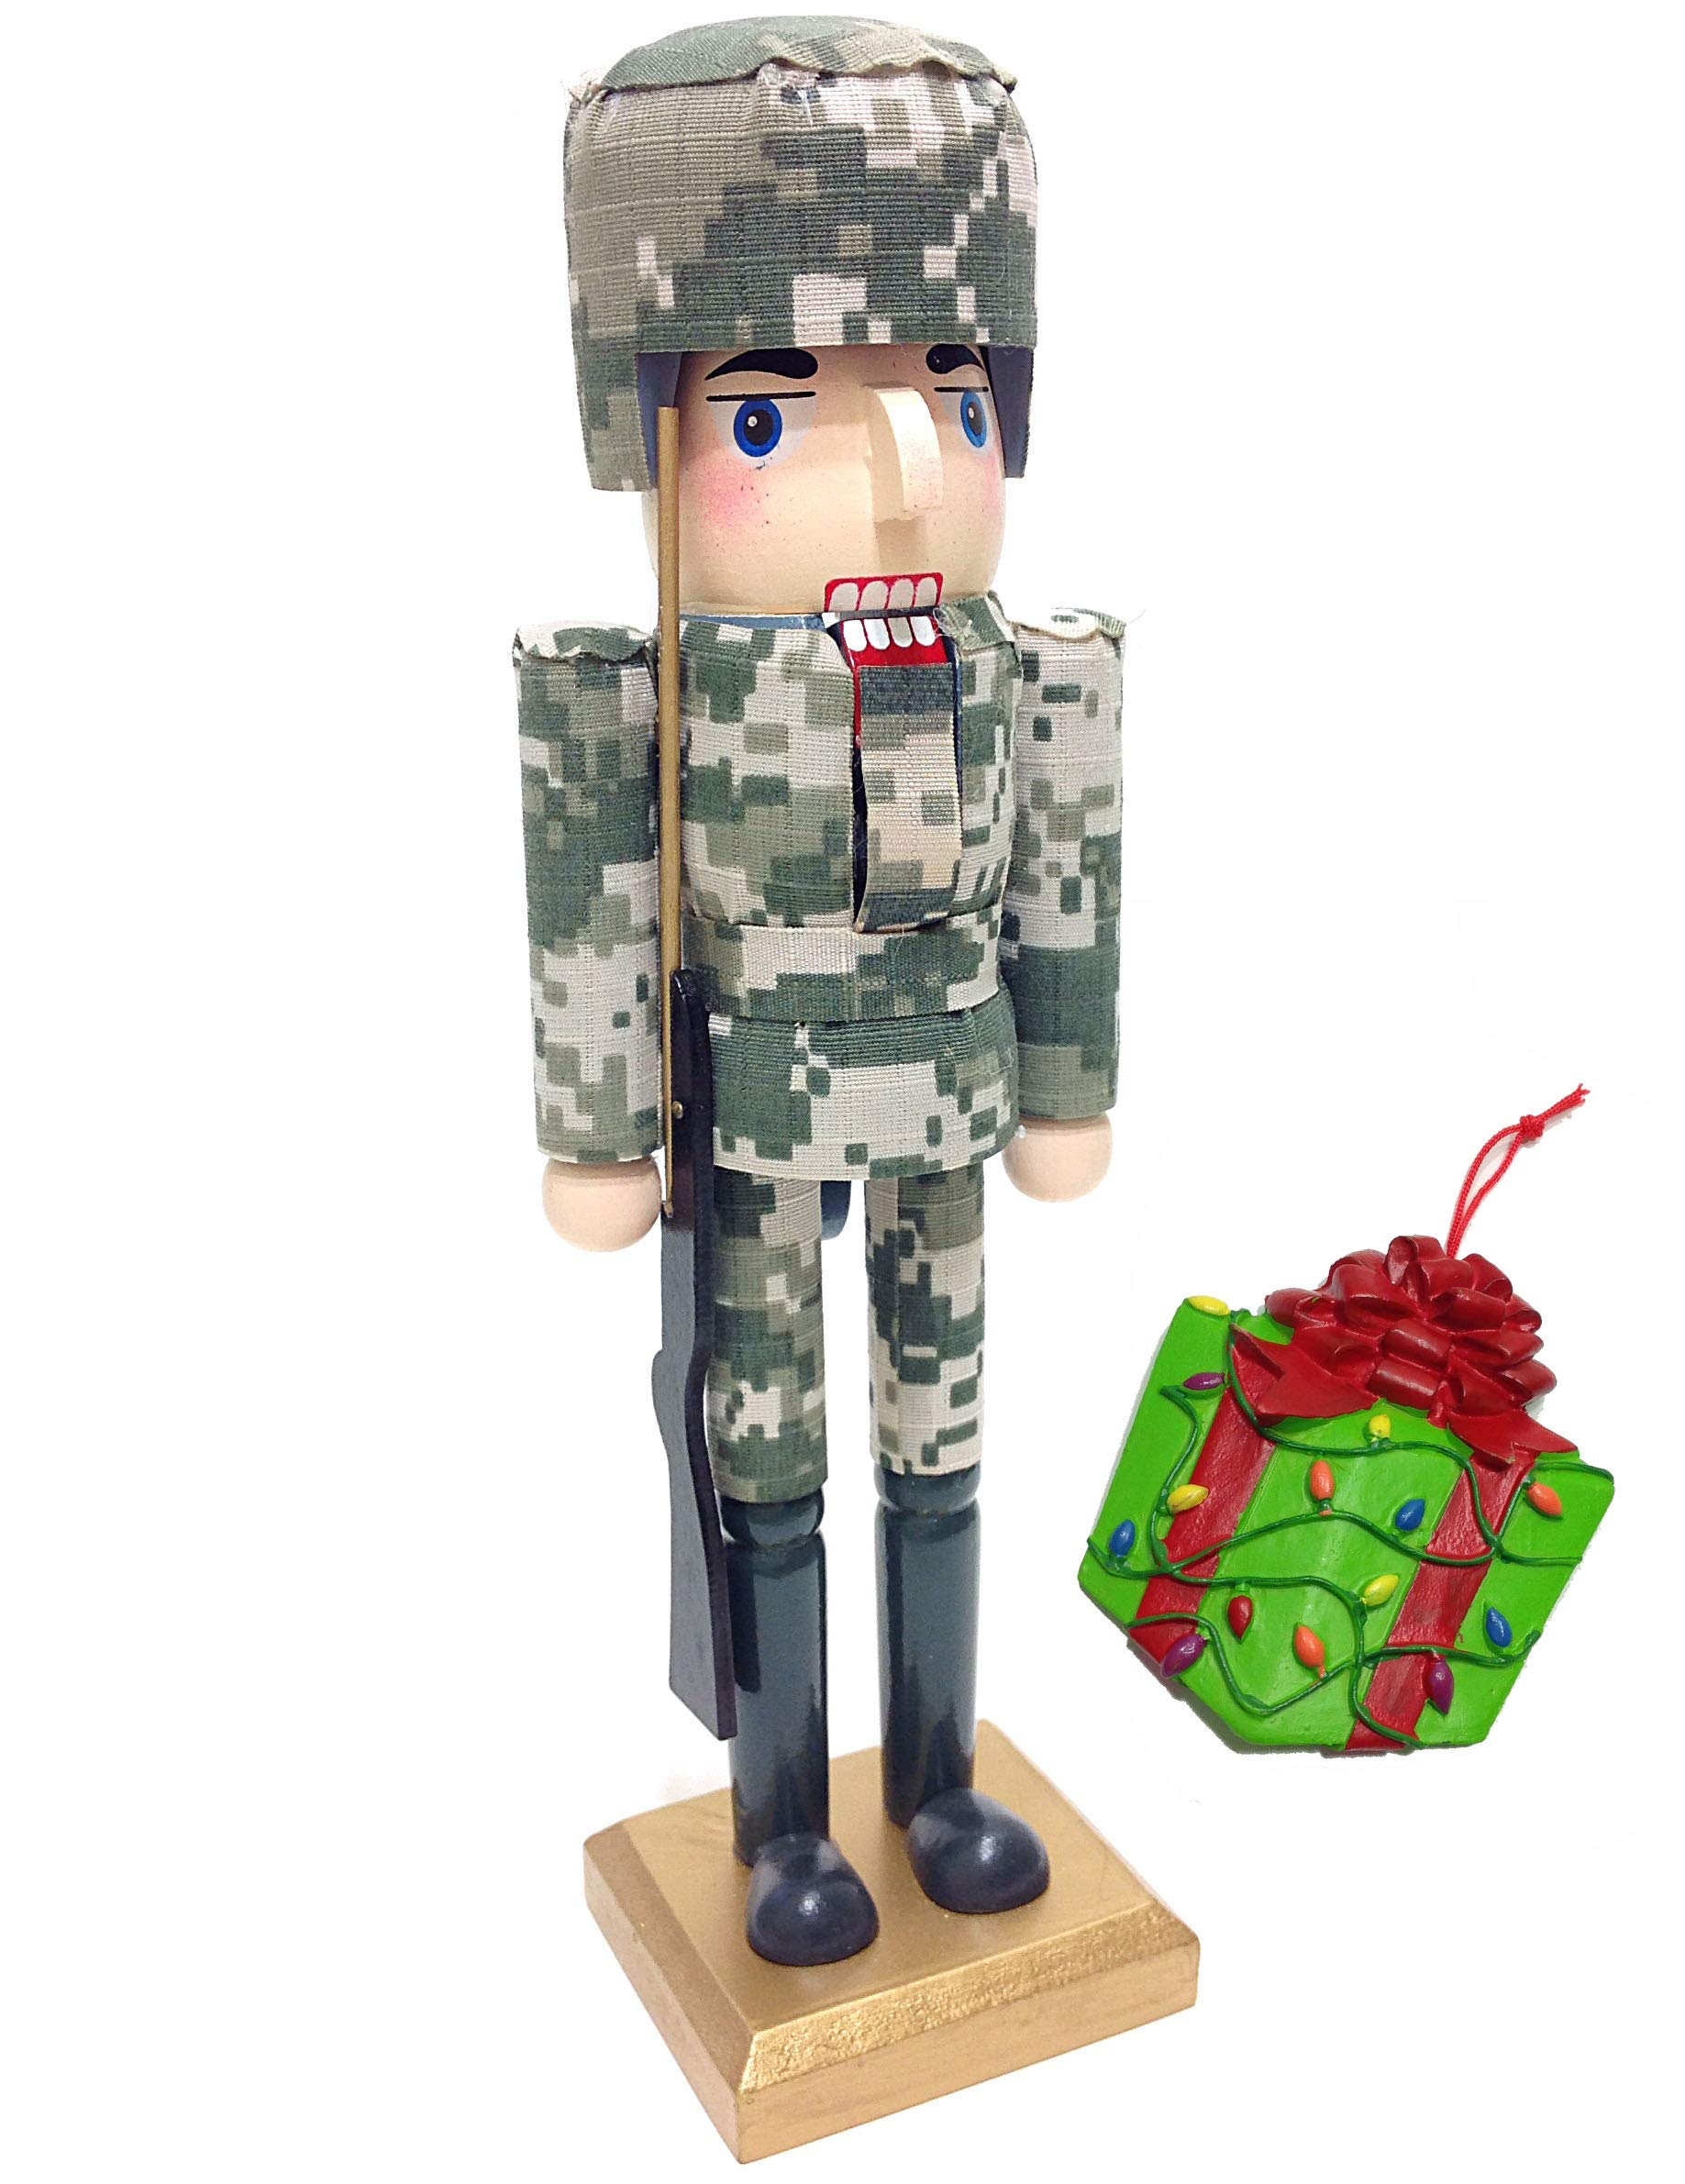 Military Armed Forces Army Soldier Themed Decorative Holiday Season Wooden Christmas Nutcracker & Bonus Tree Ornament